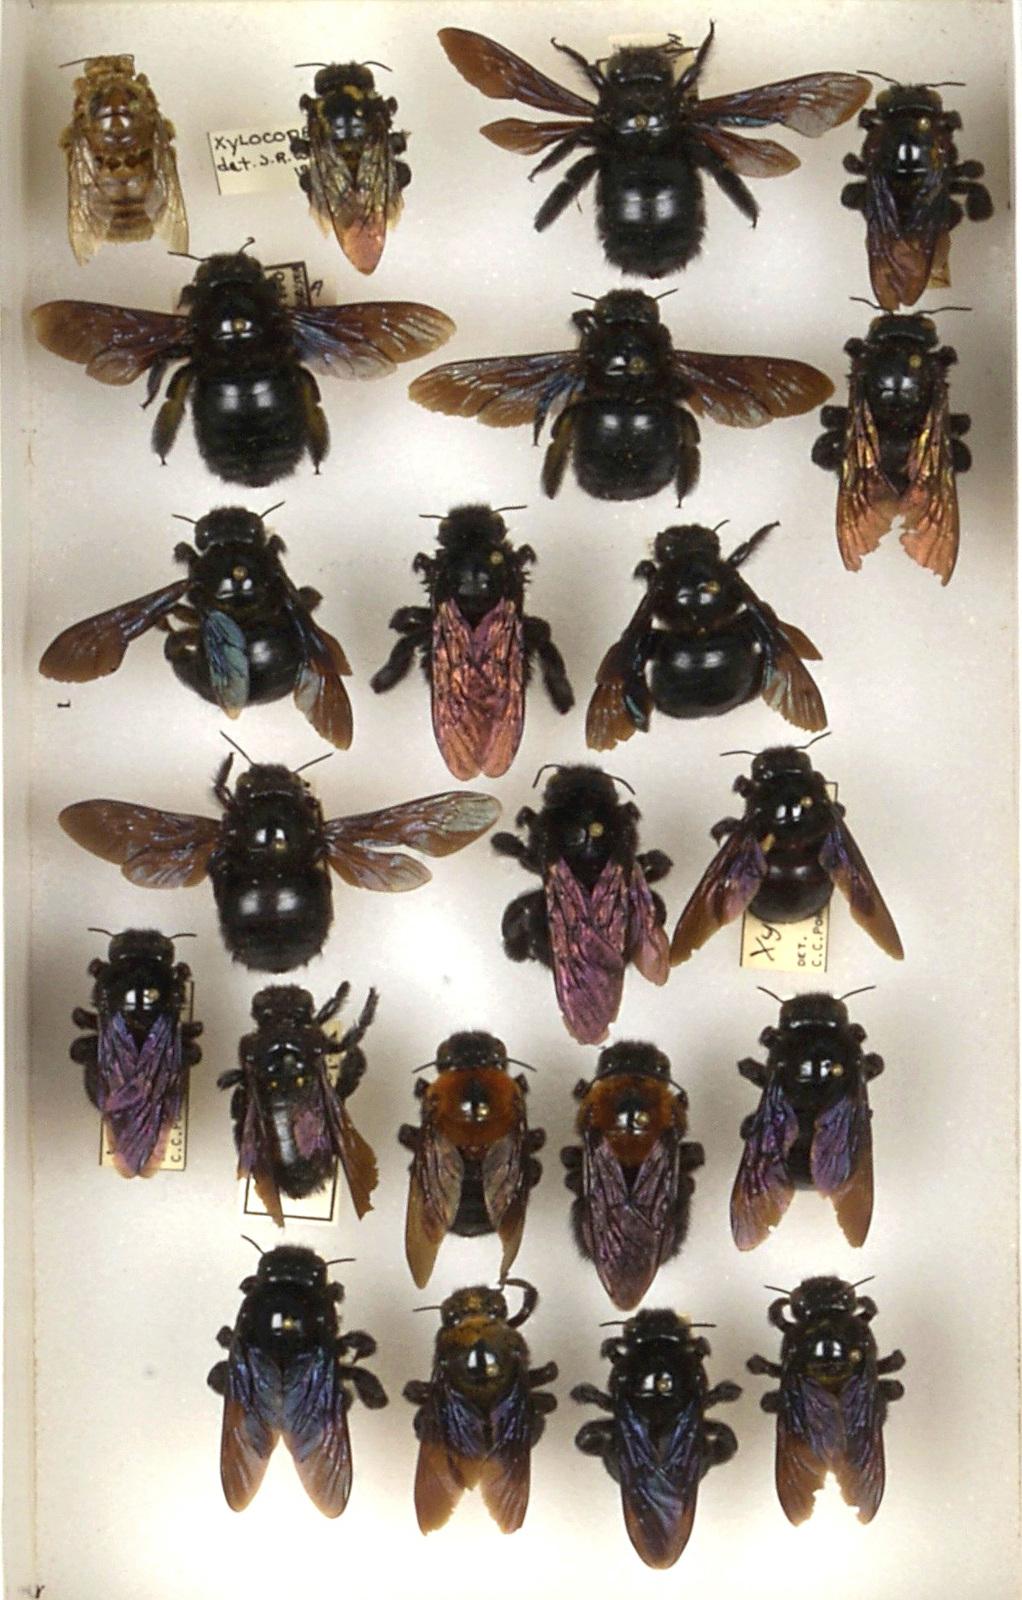 Bee Collection, Detail, Xylocopa, Carpenter Bees